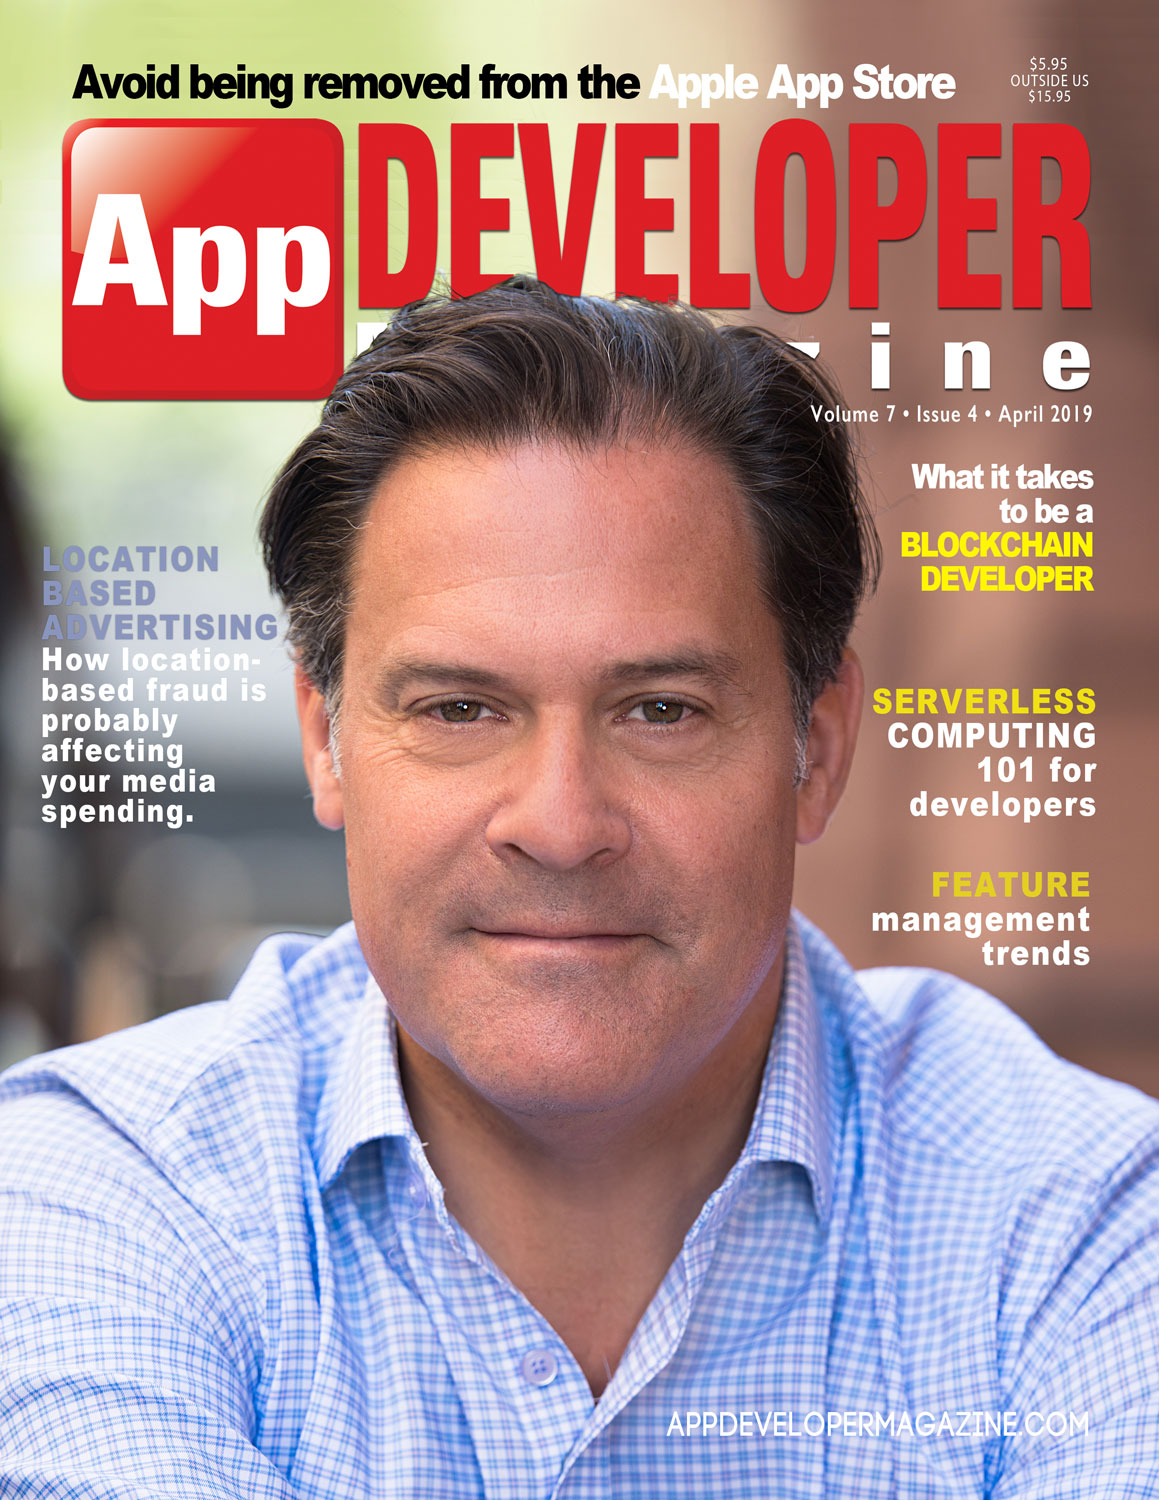 App Developer Magazine April 2019 Cover